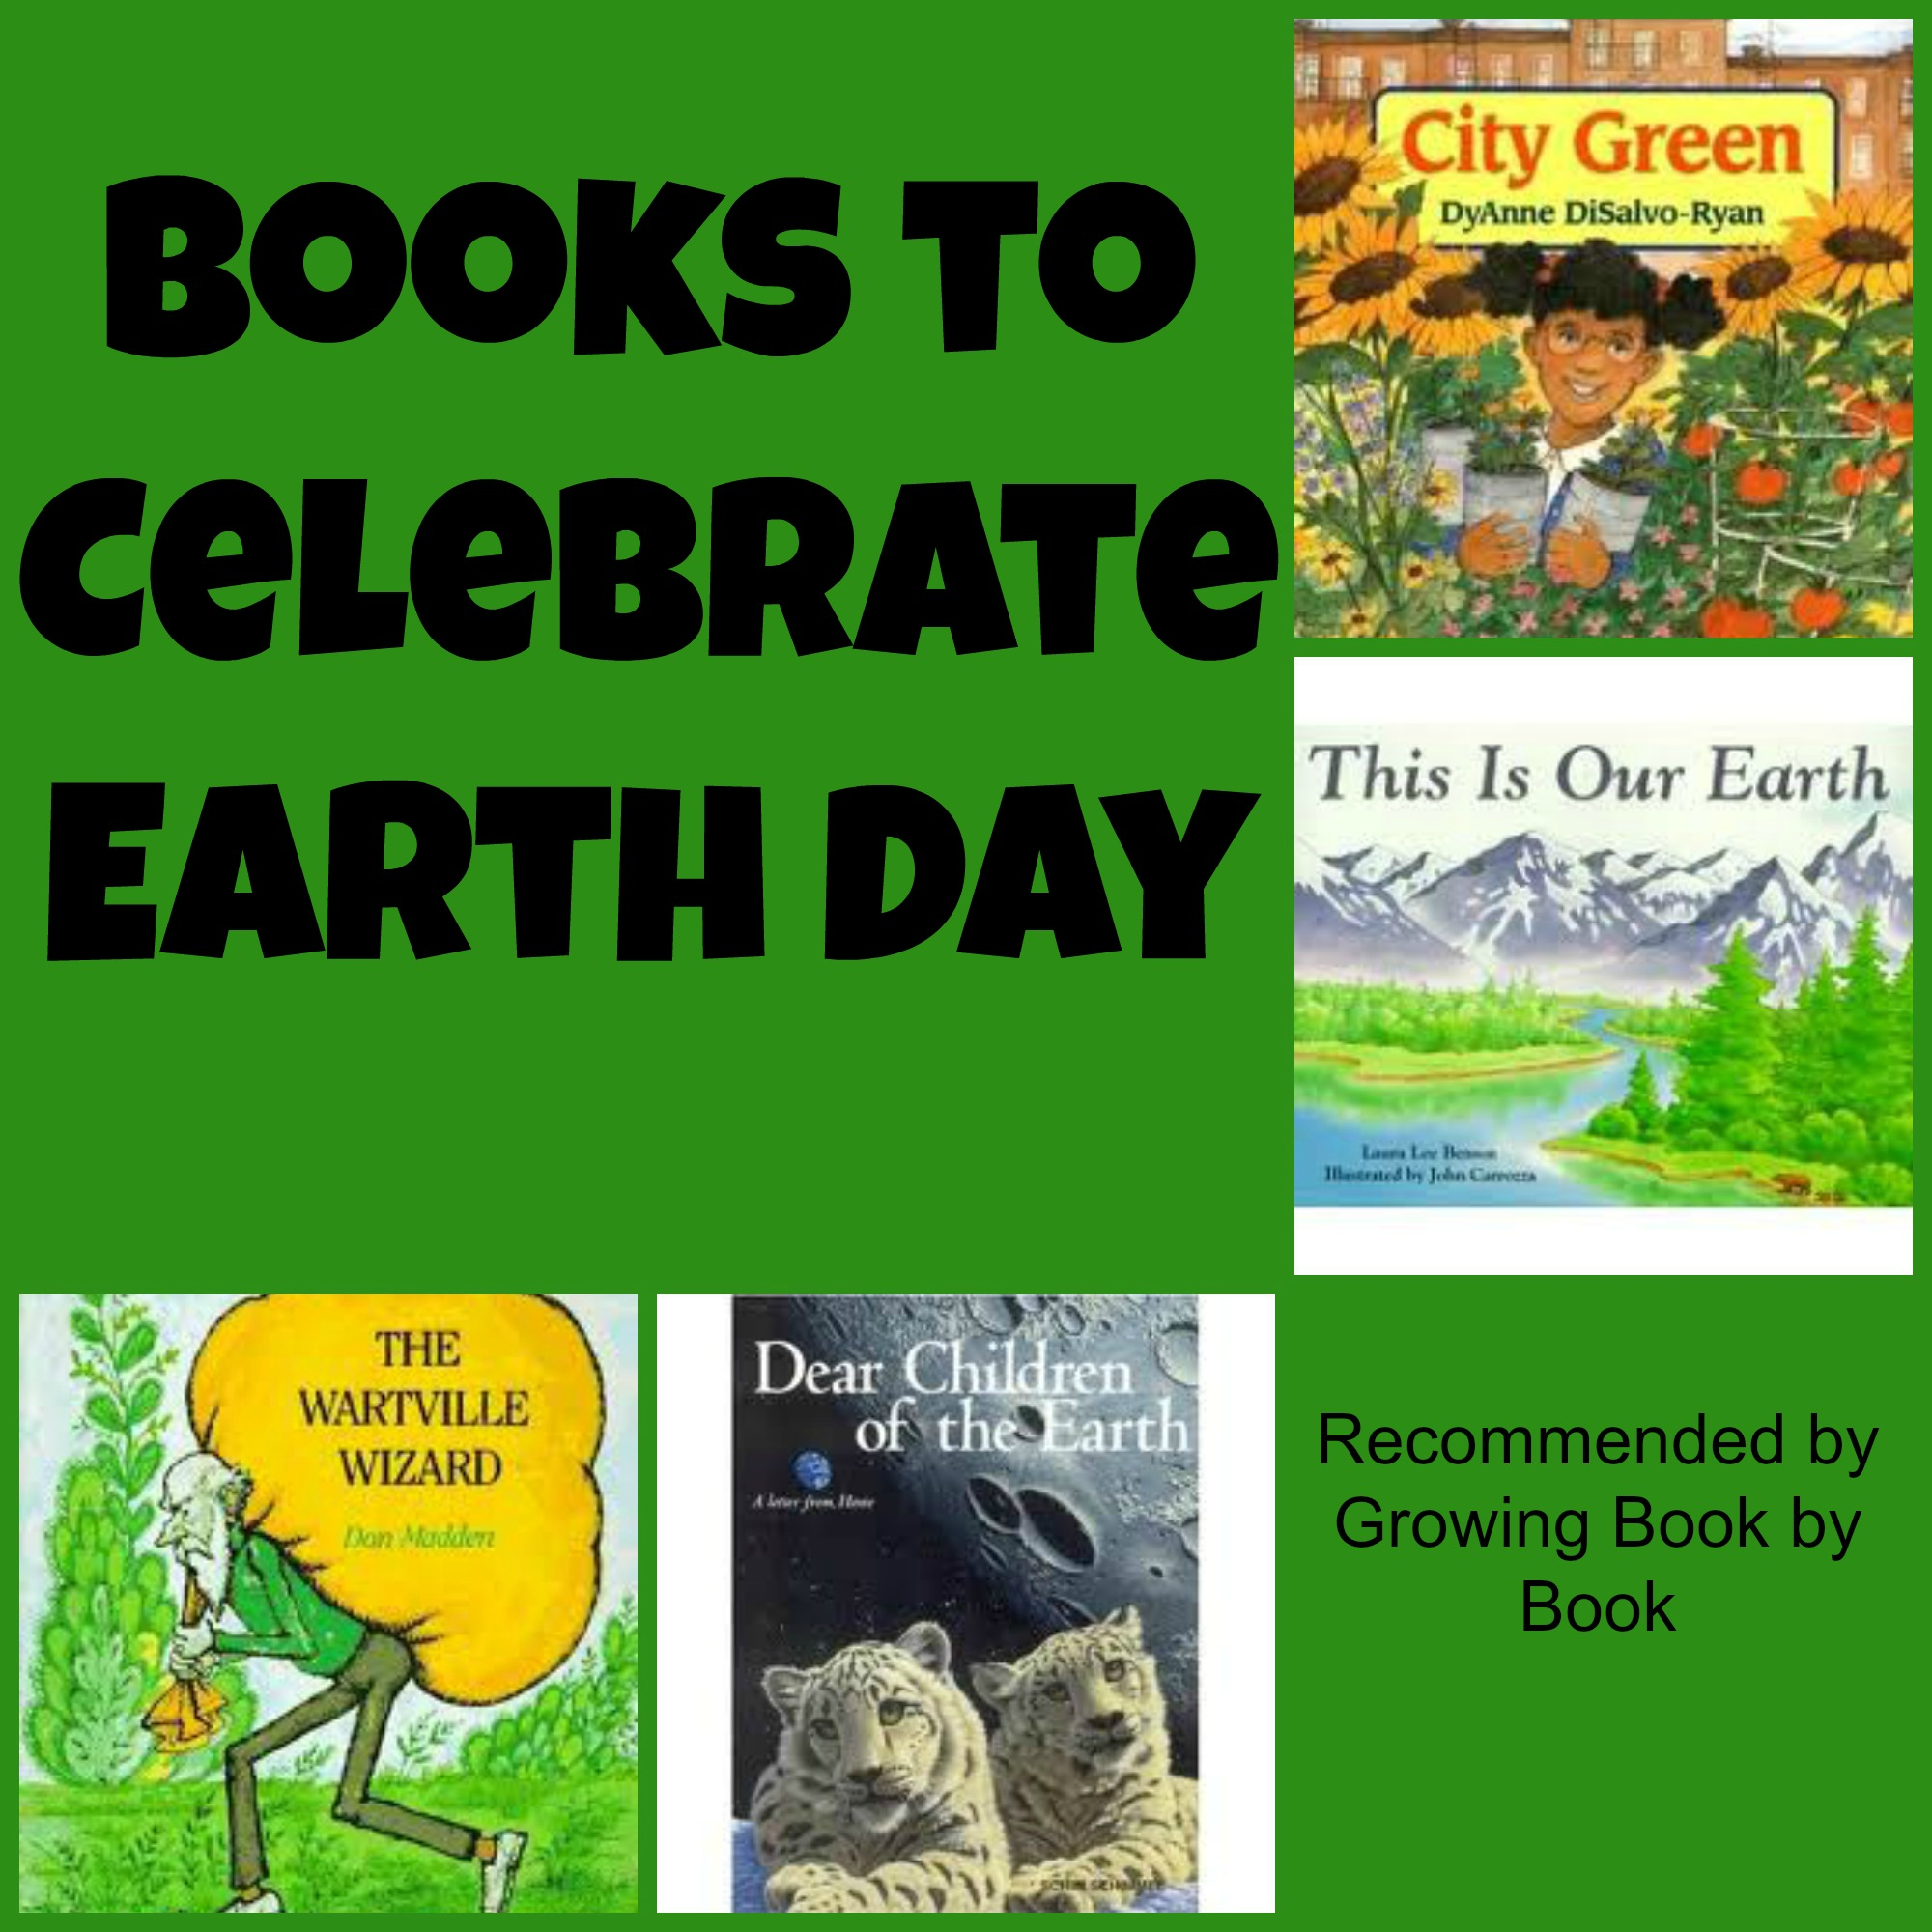 Books to celebrate Earth Day recommended by Growing Book by Book